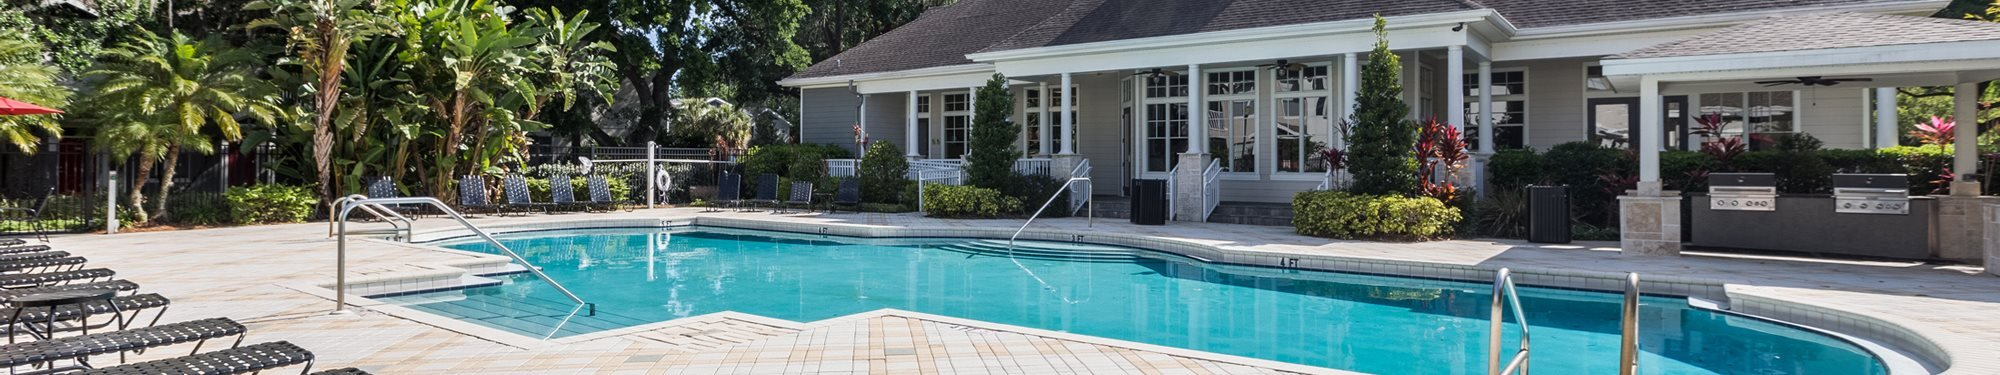 Swimming Pool at Rivertree Apartments in Riverview, FL